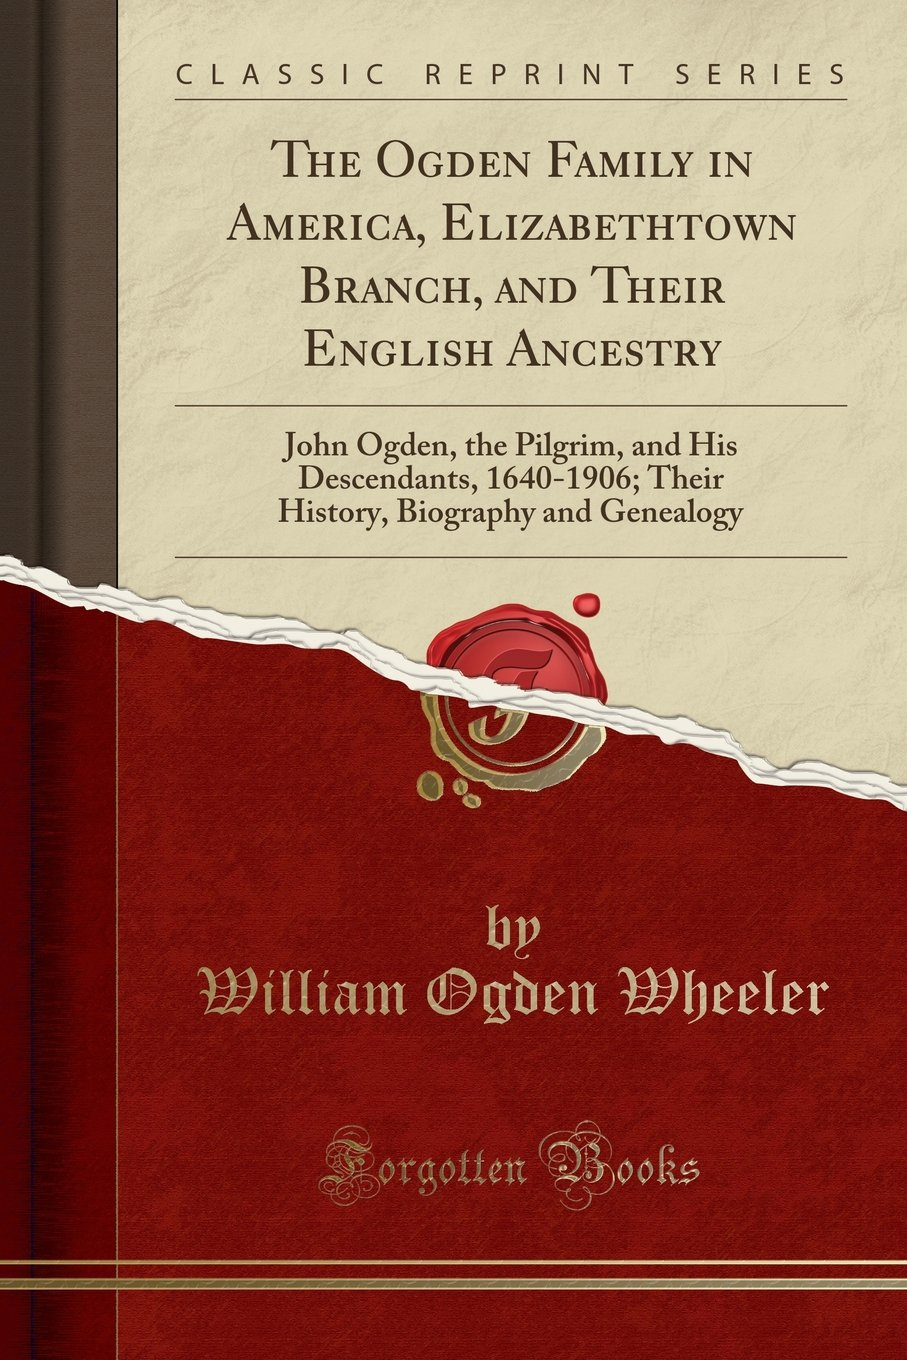 Download The Ogden Family in America, Elizabethtown Branch, and Their English Ancestry: John Ogden, the Pilgrim, and His Descendants, 1640-1906; Their History, Biography and Genealogy (Classic Reprint) pdf epub